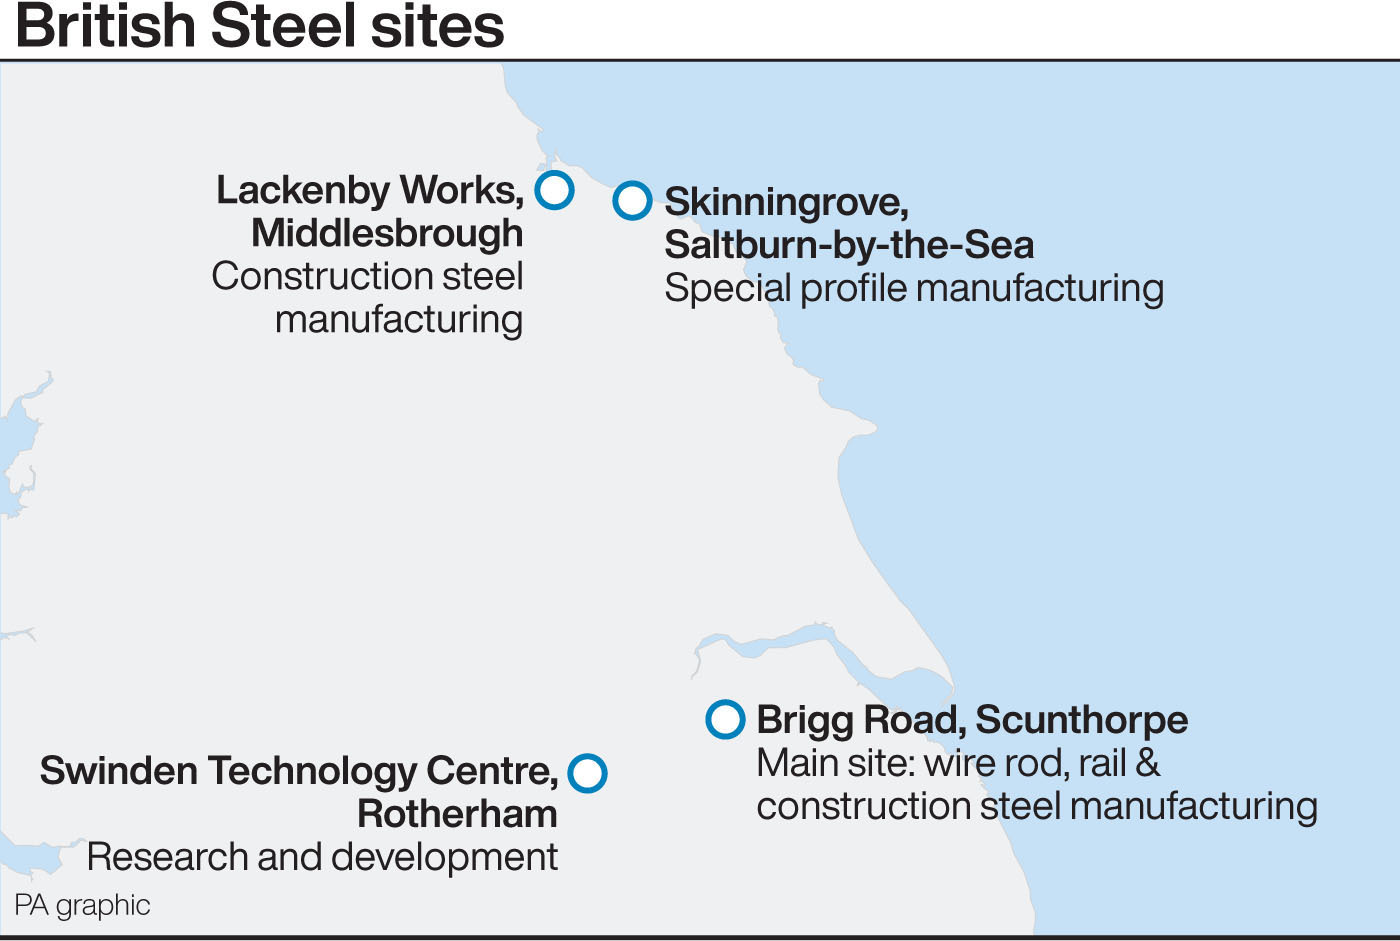 Rescue of British Steel by China's Jingye confirmed